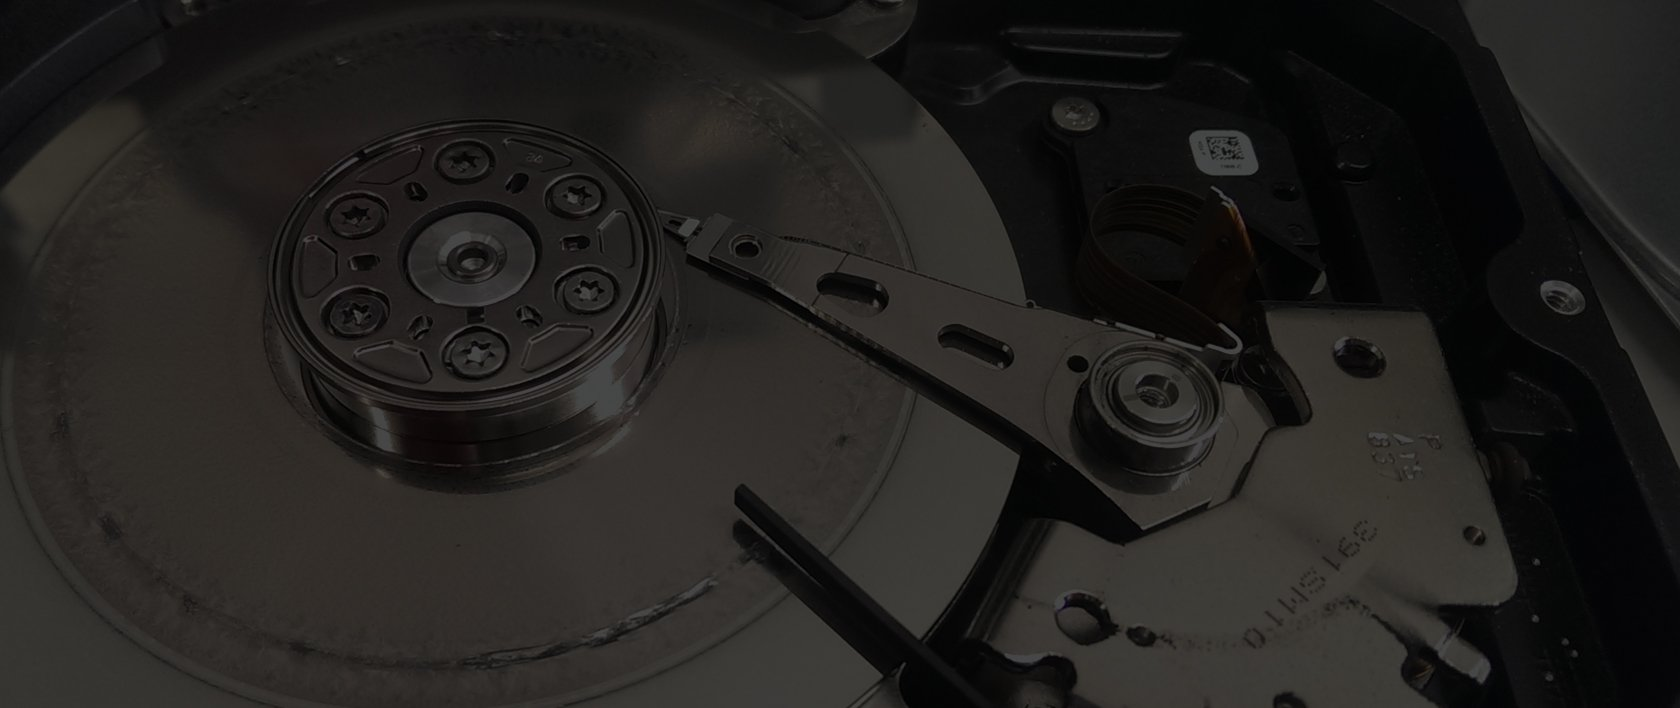 Best Professional Data Recovery Services Near Me |